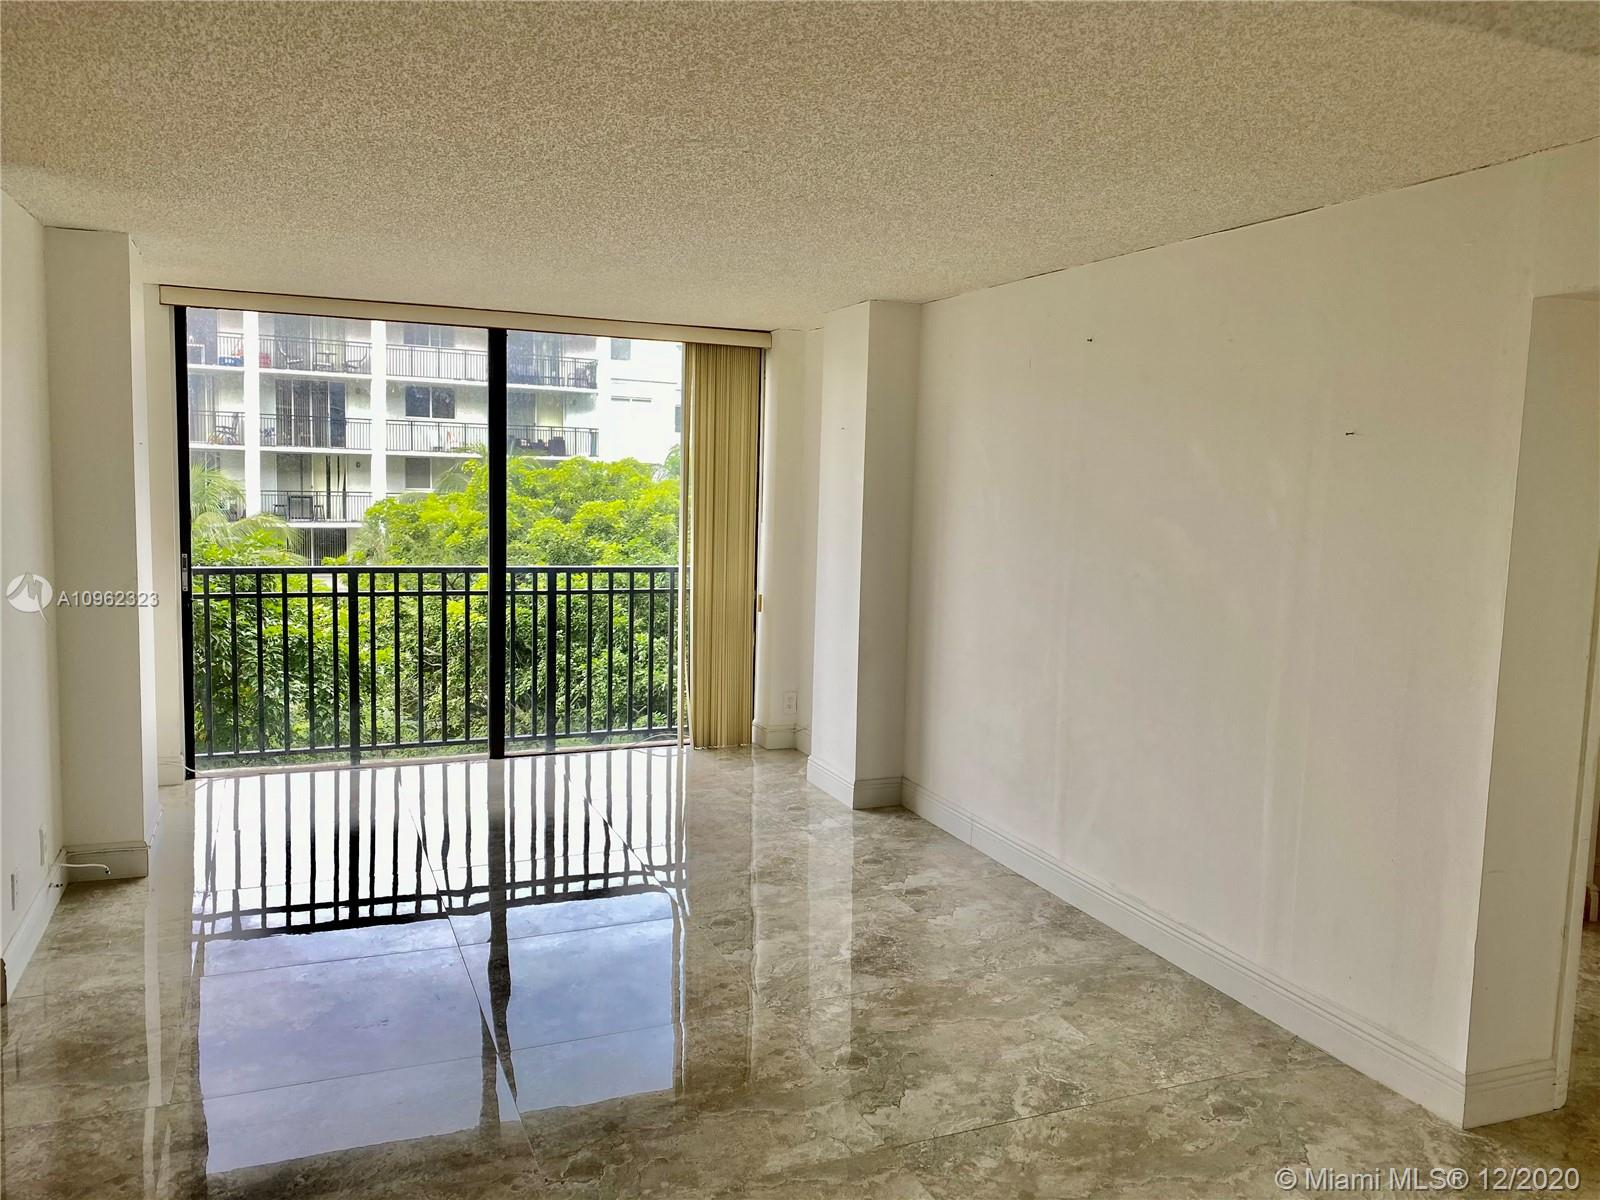 Plaza of the Americas 4 #402 - 17021 N Bay Rd #402, Sunny Isles Beach, FL 33160